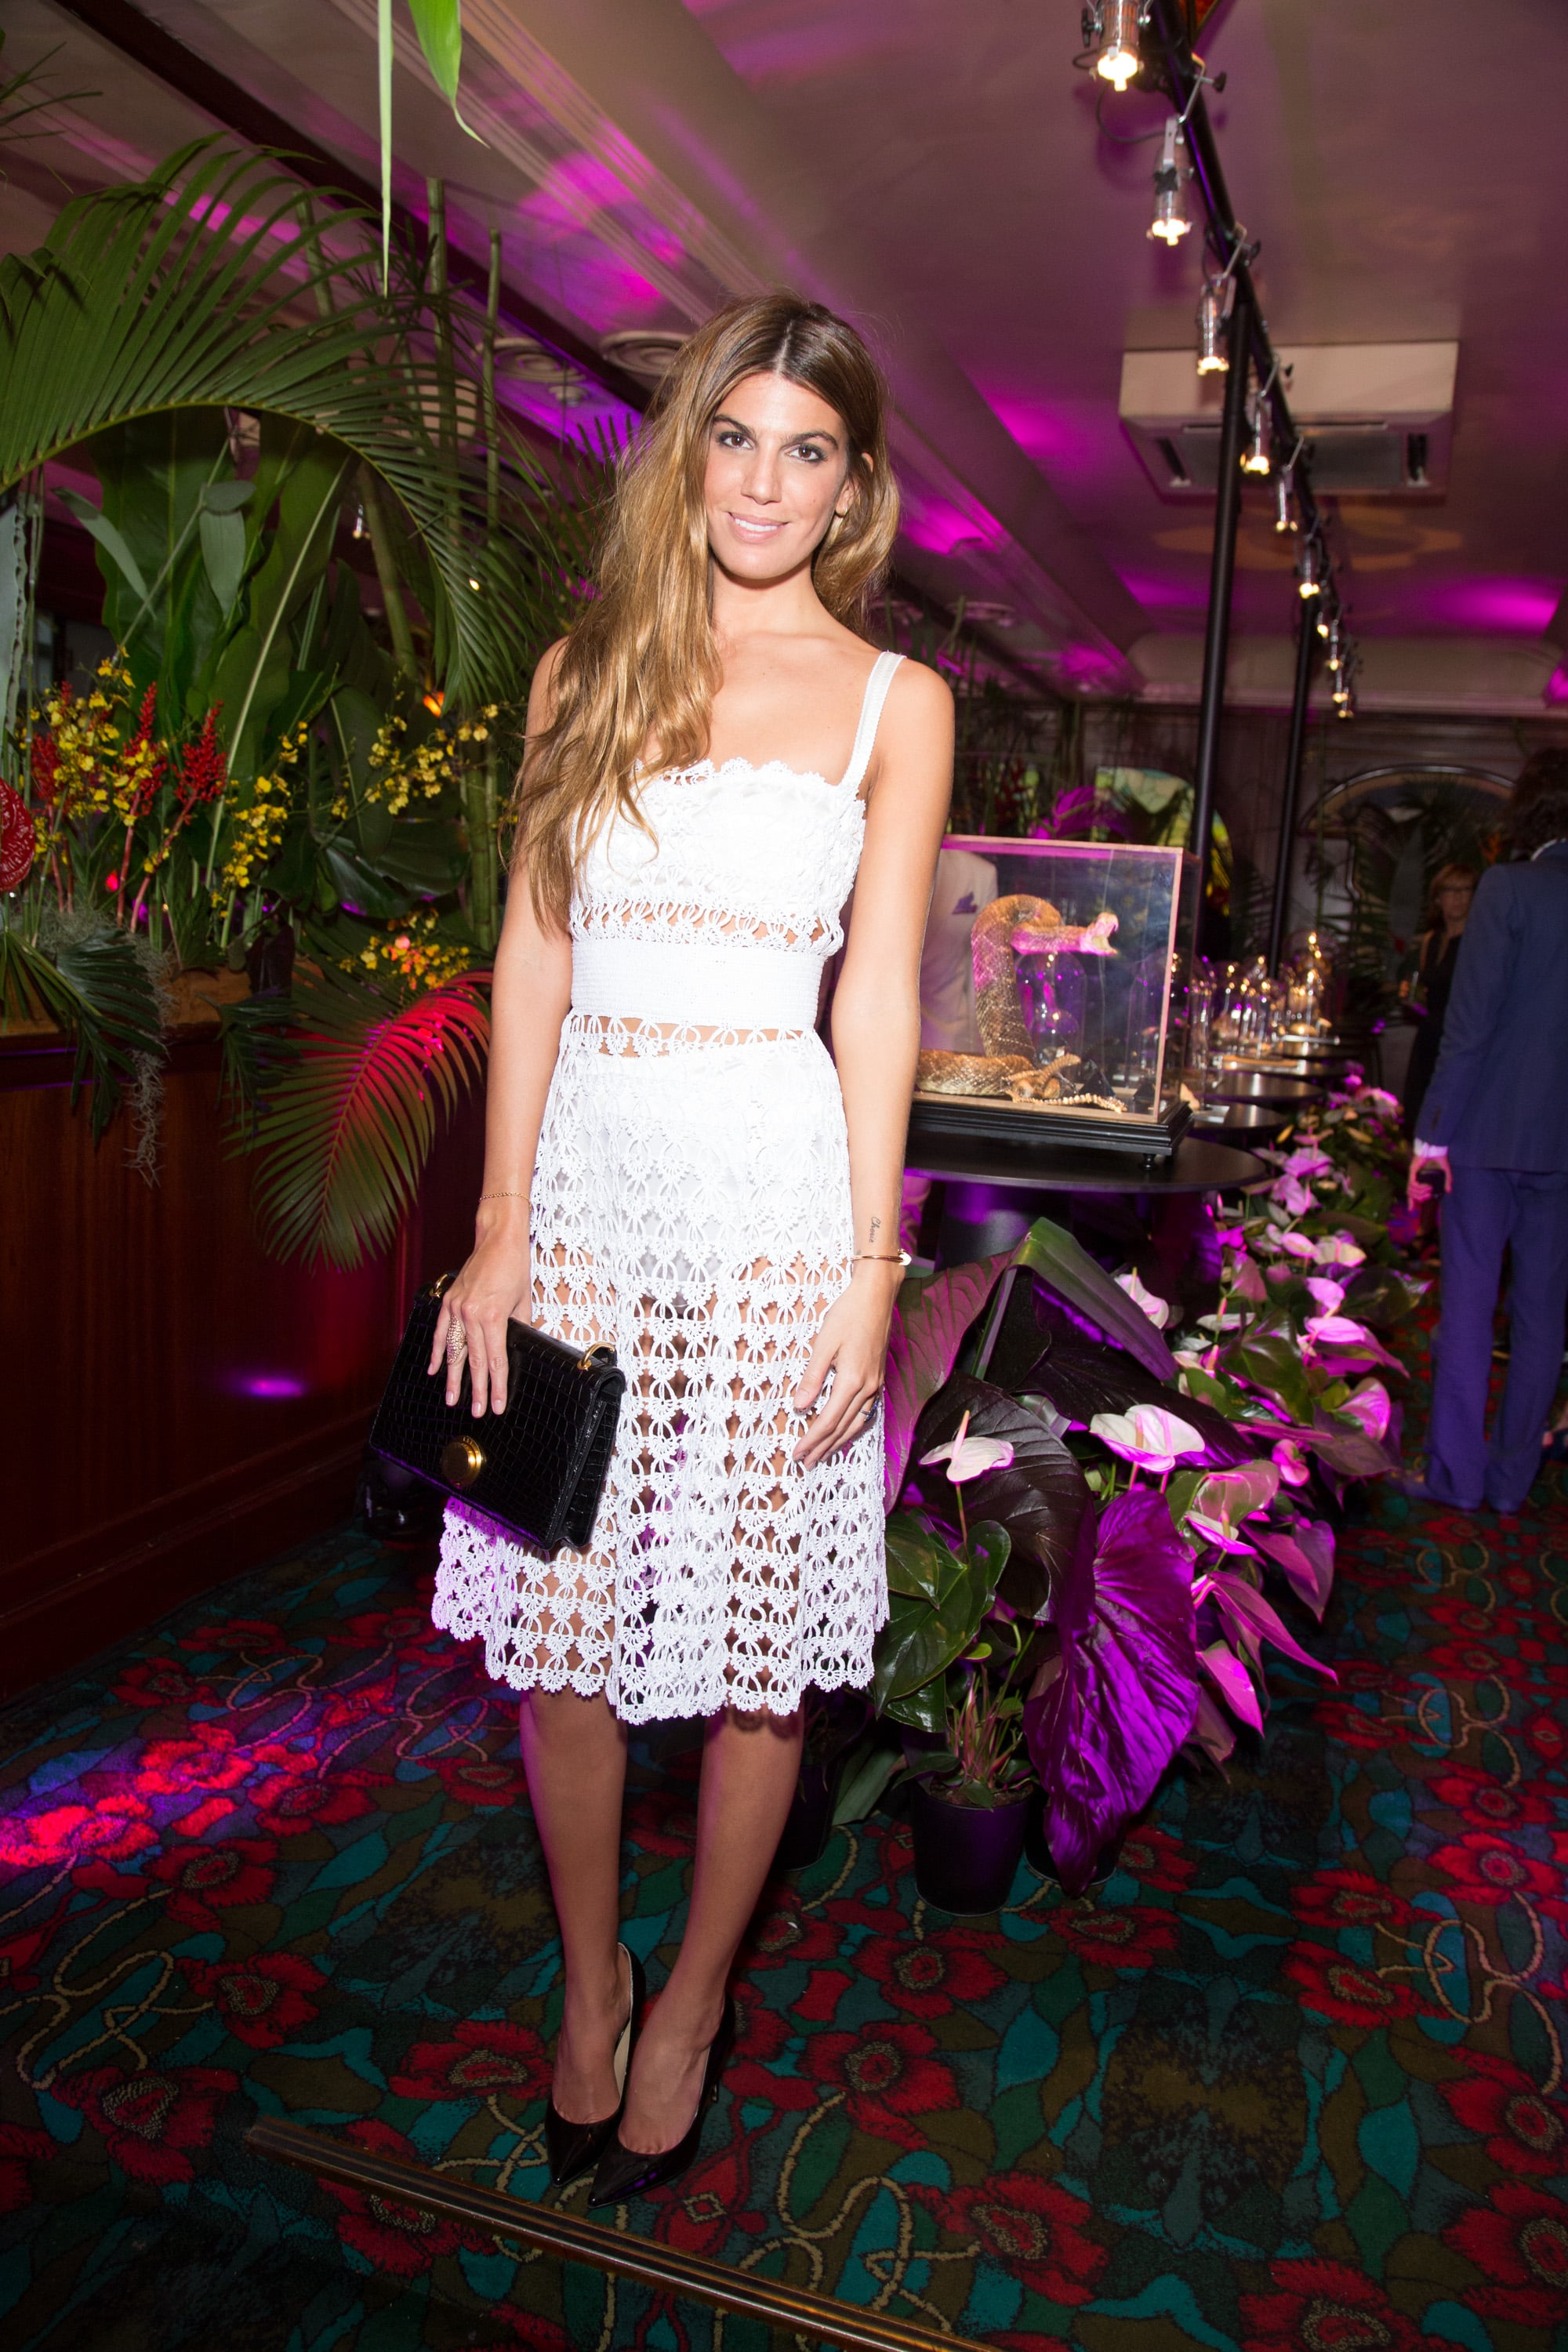 Bianca Brandolini played peek-a-boo in white at the Paris launch of Eugenie Niarchos's jewelry line.